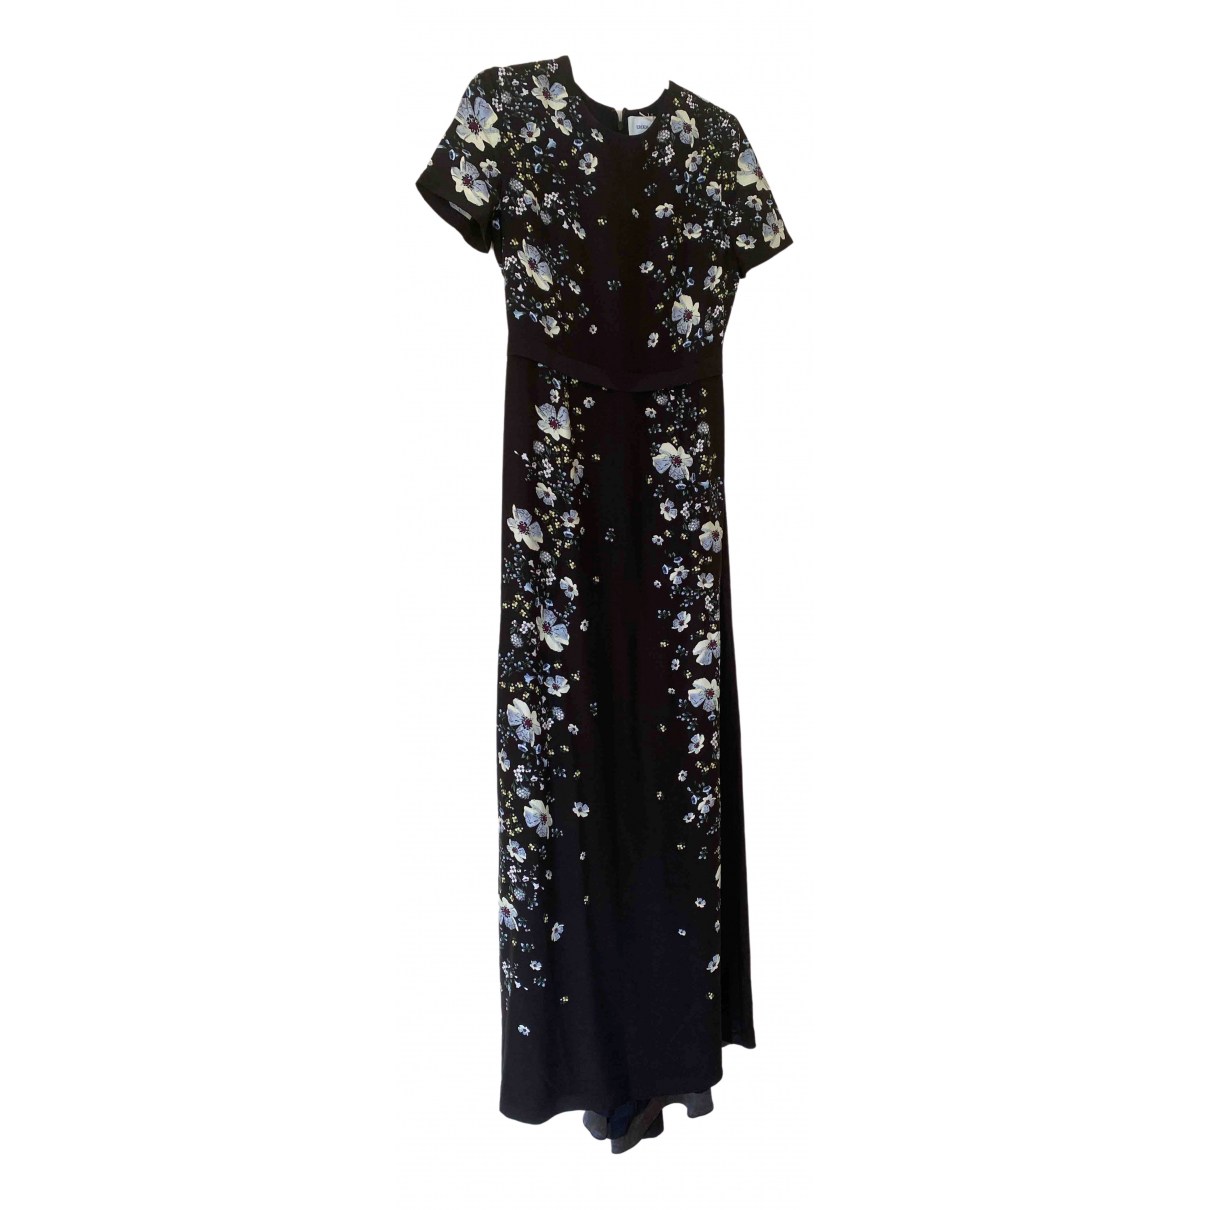 Erdem \N Black Silk dress for Women 12 UK